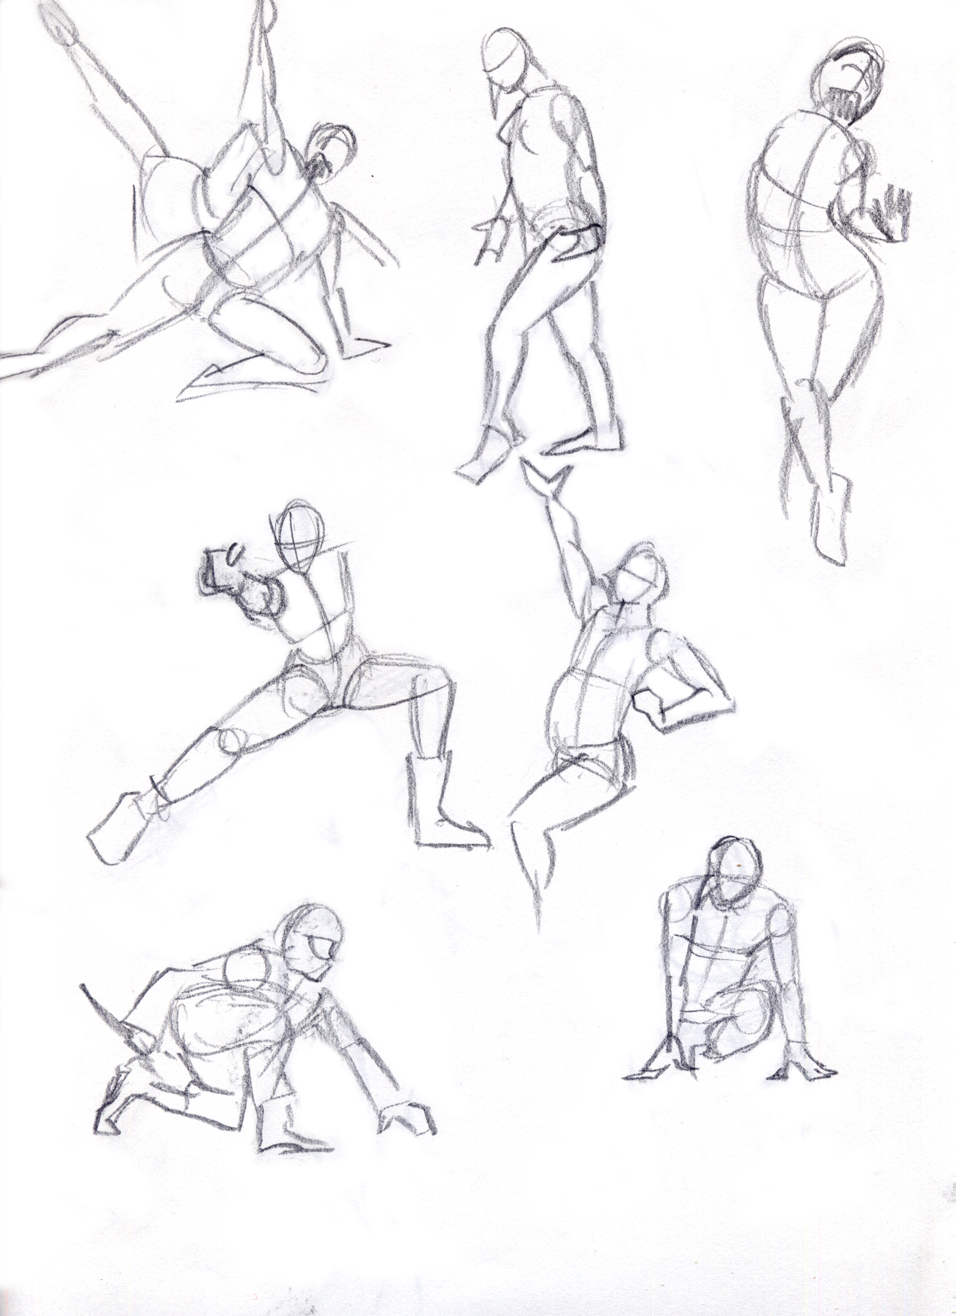 Studio Gattai  Figure Drawing  Using Pixelovely